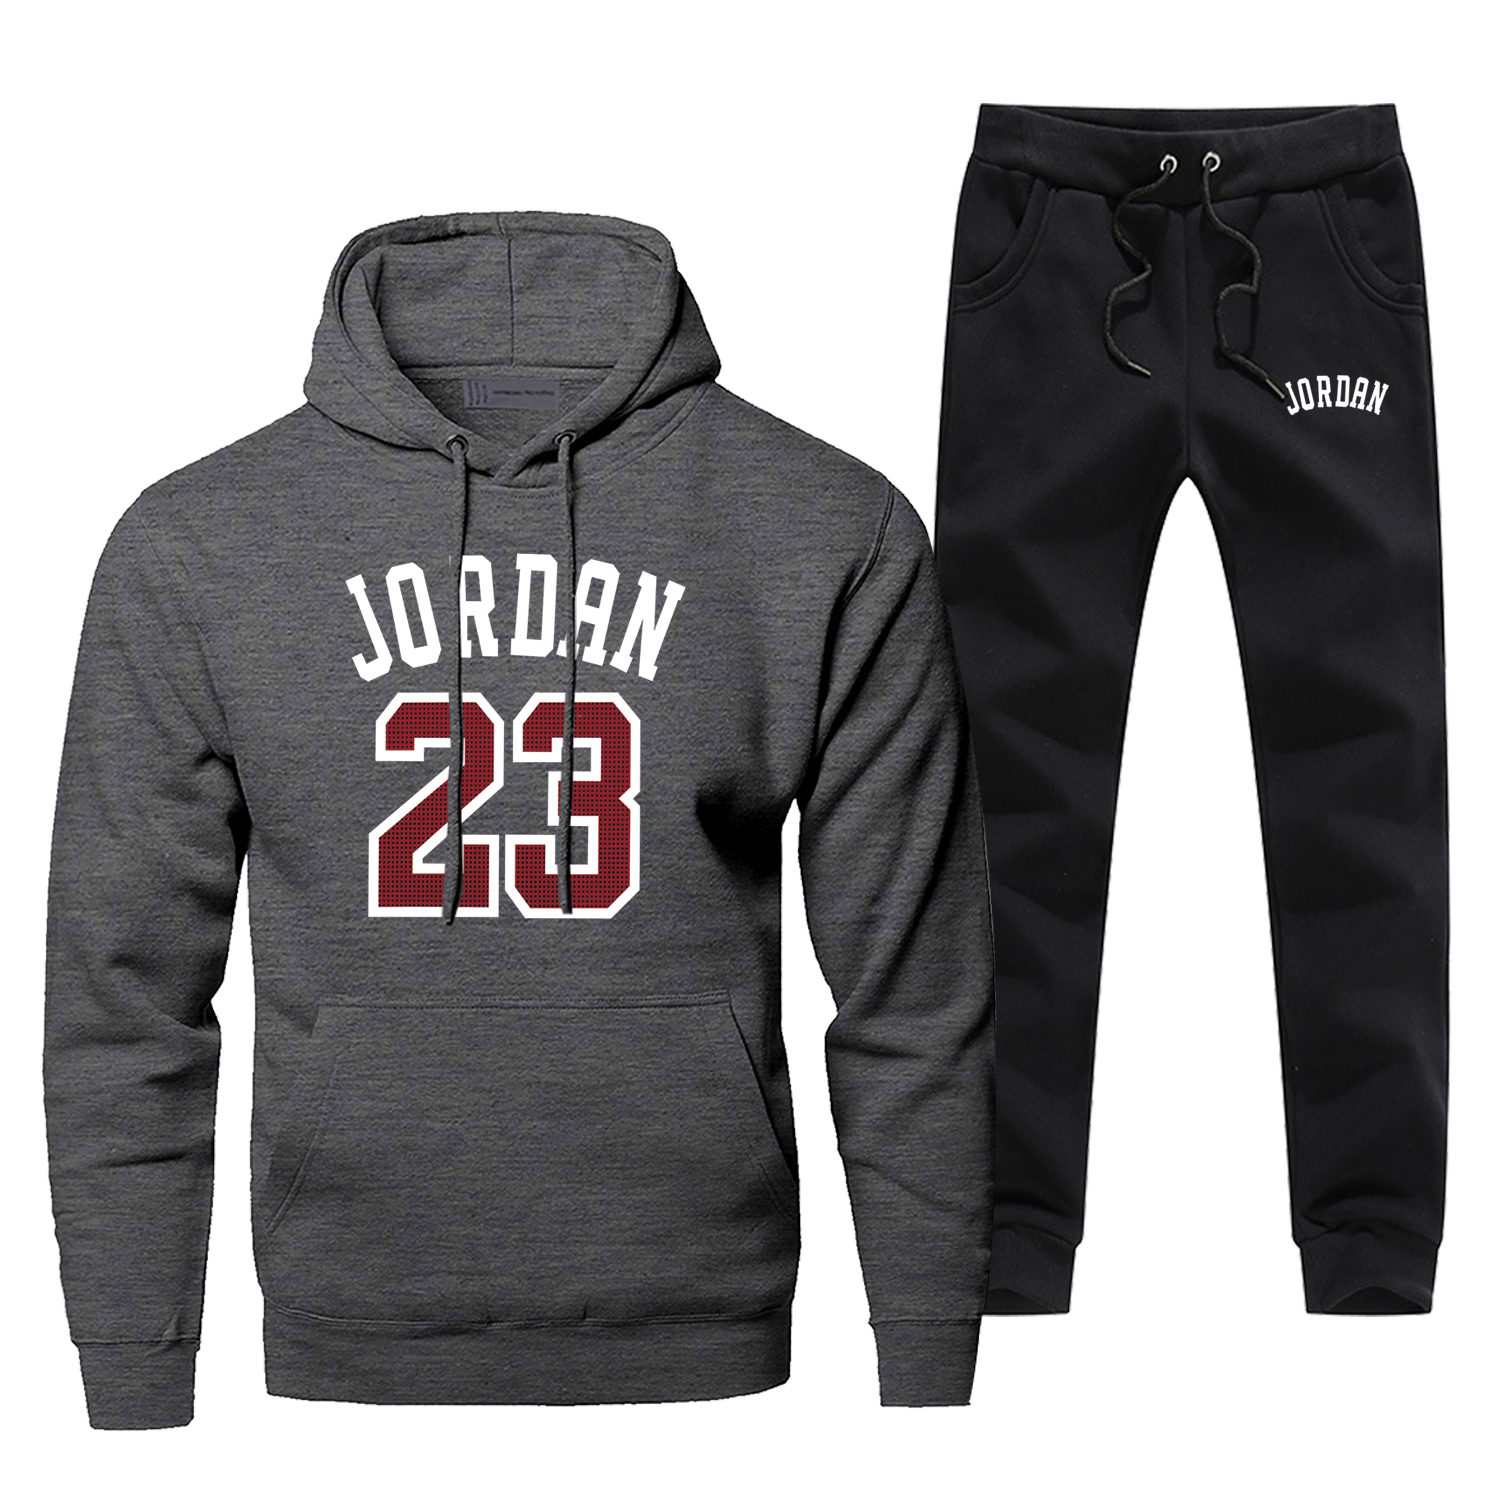 Jordan 23 Print Men's Full Suit Tracksuit Fashion Brand Man Track Suit Casual Thermo Underwear Fleece Winter Hip Hop Streetwear